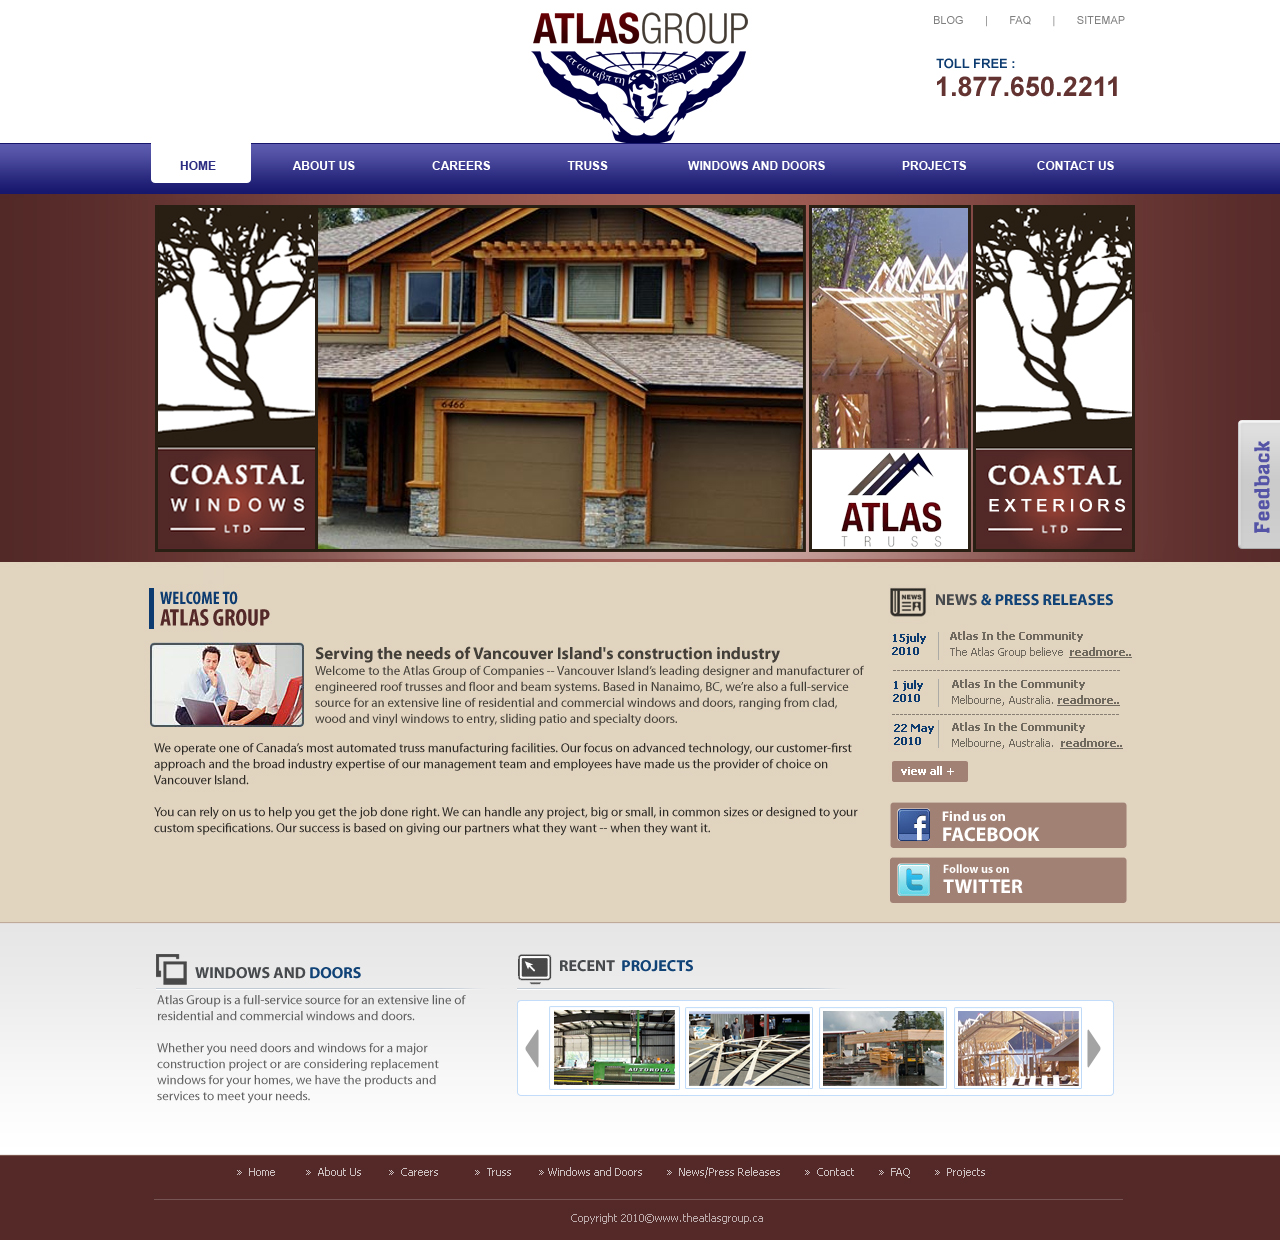 Web Page Design by designspixel - Entry No. 69 in the Web Page Design Contest The Atlas Group Website.